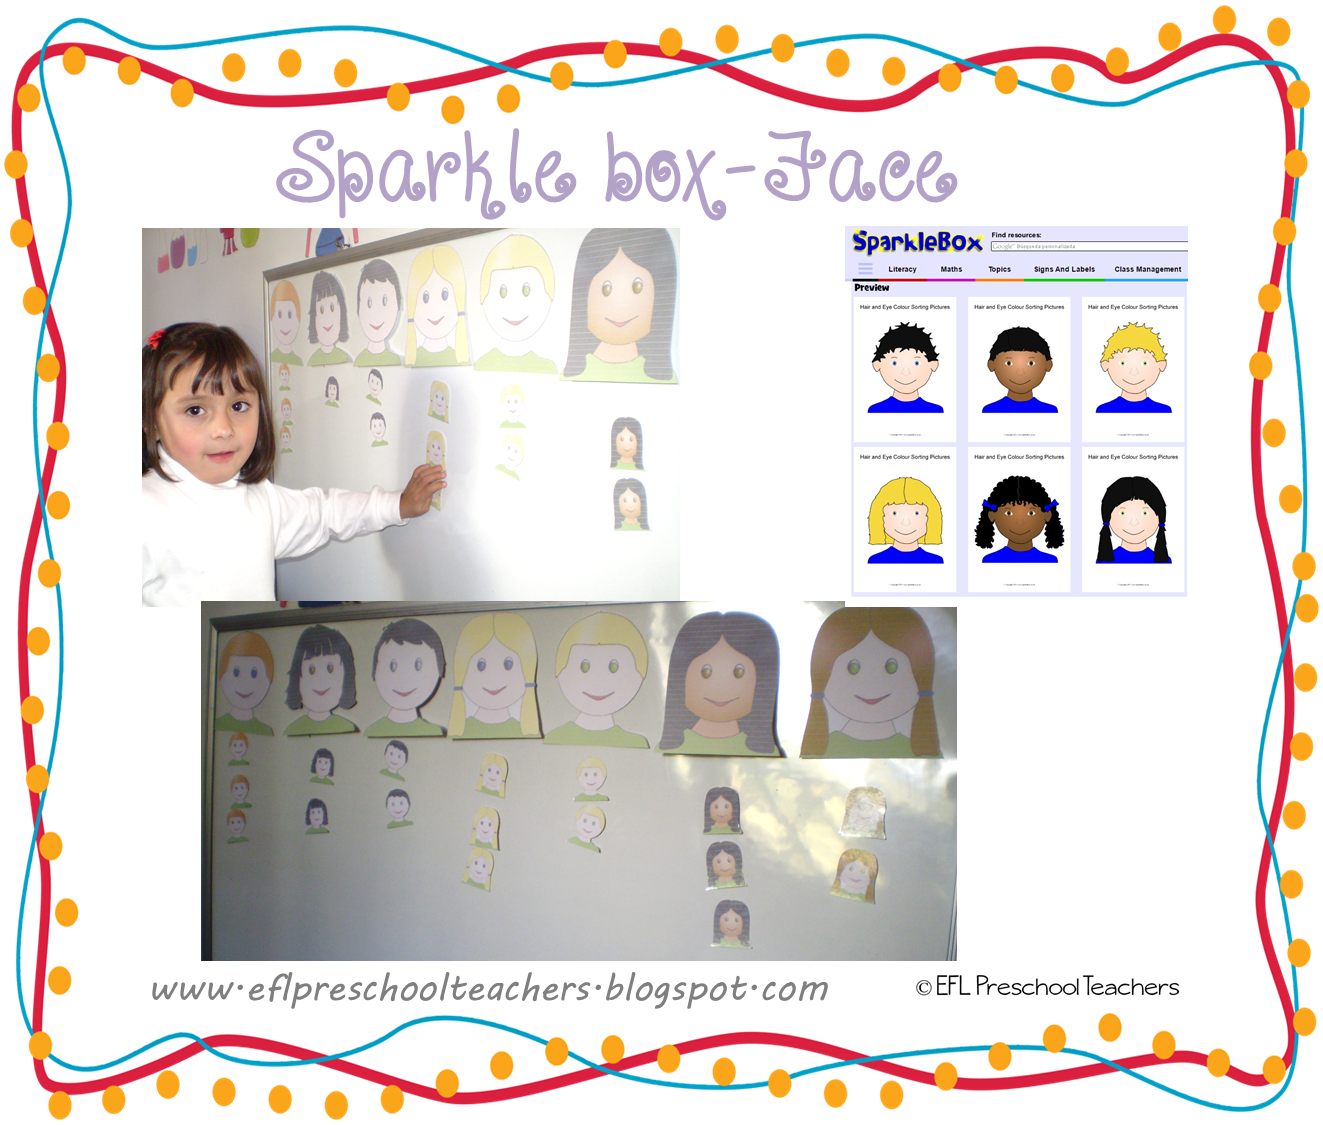 Esl Efl Preschool Teachers Face Teaching Materials For The Preschool Ell